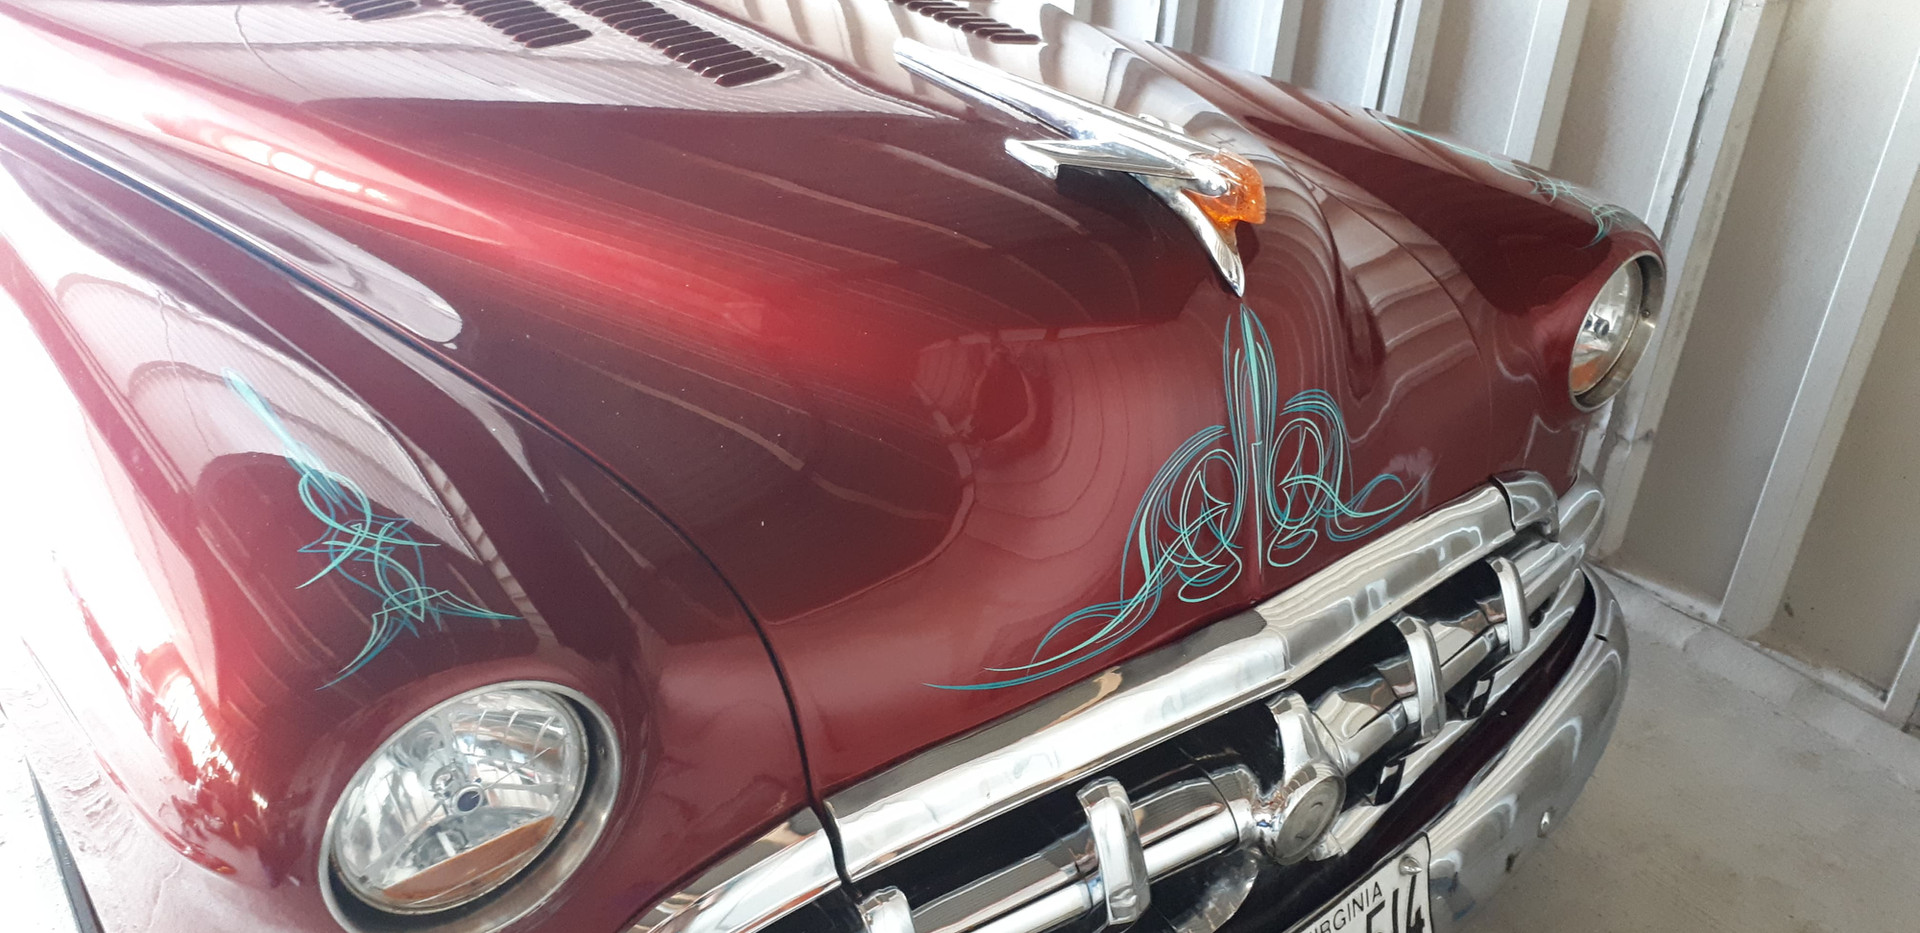 Pinstriped vintage car